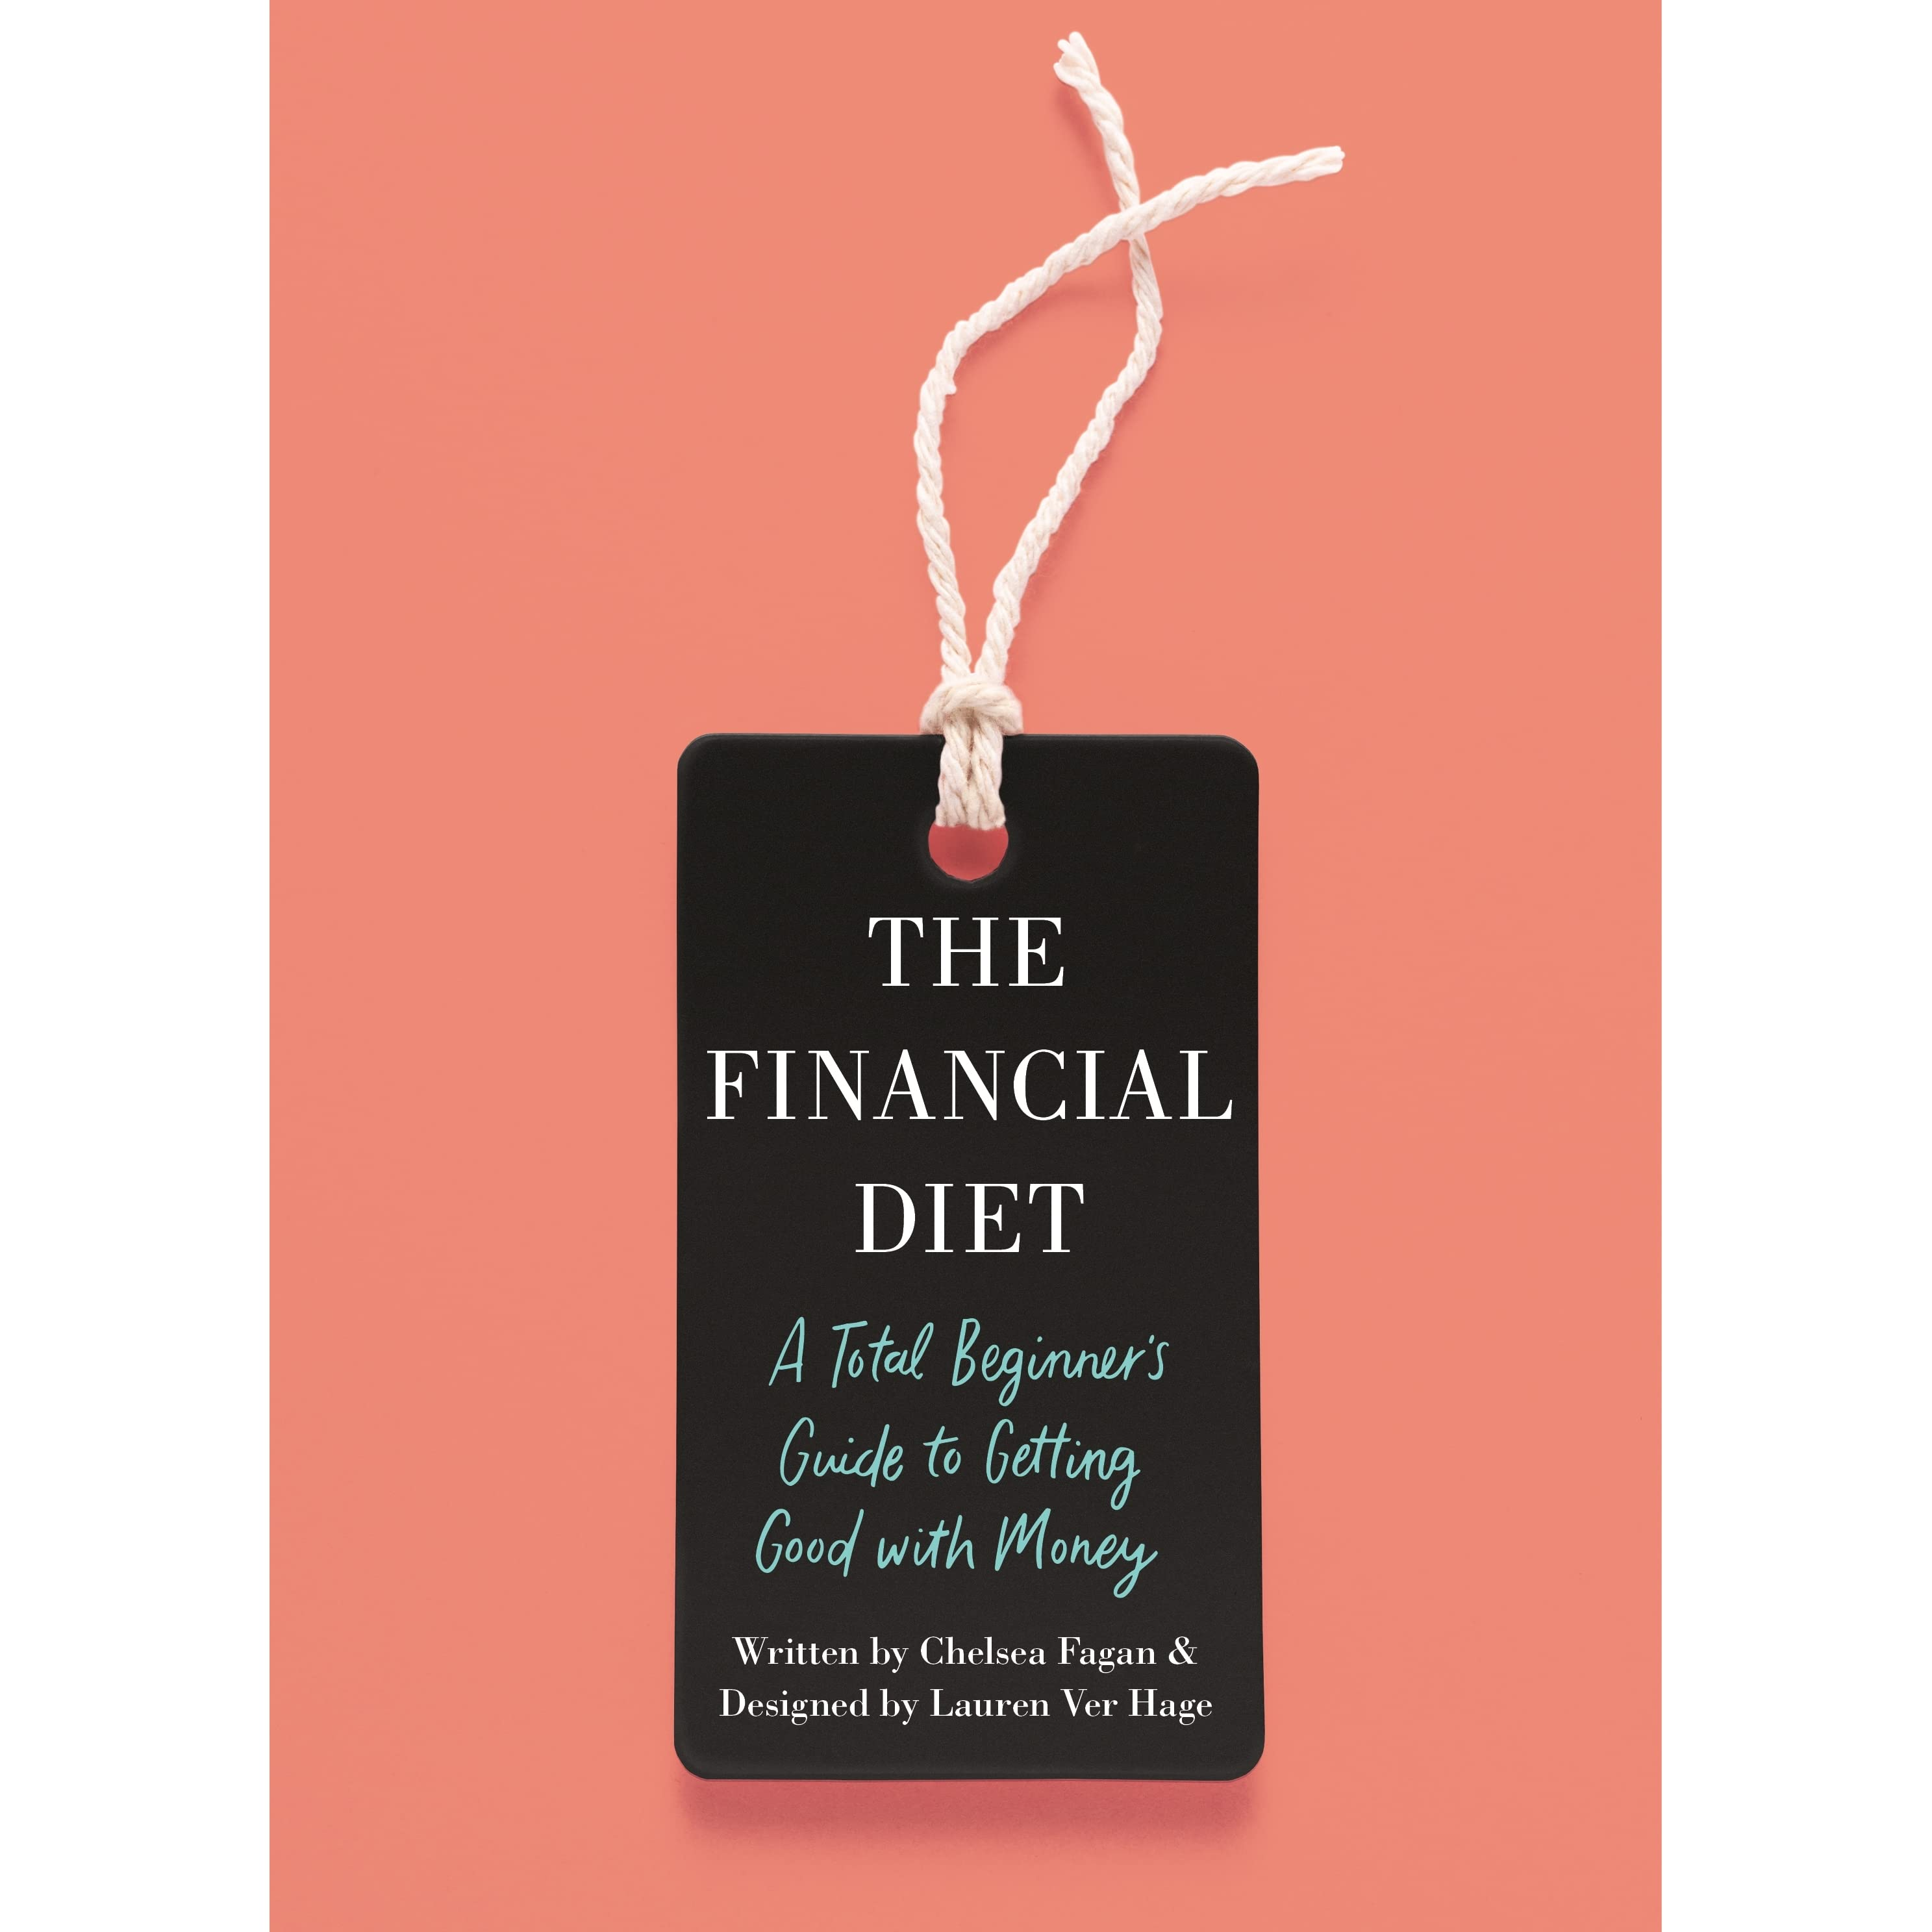 The Financial Diet by Chelsea Fagan